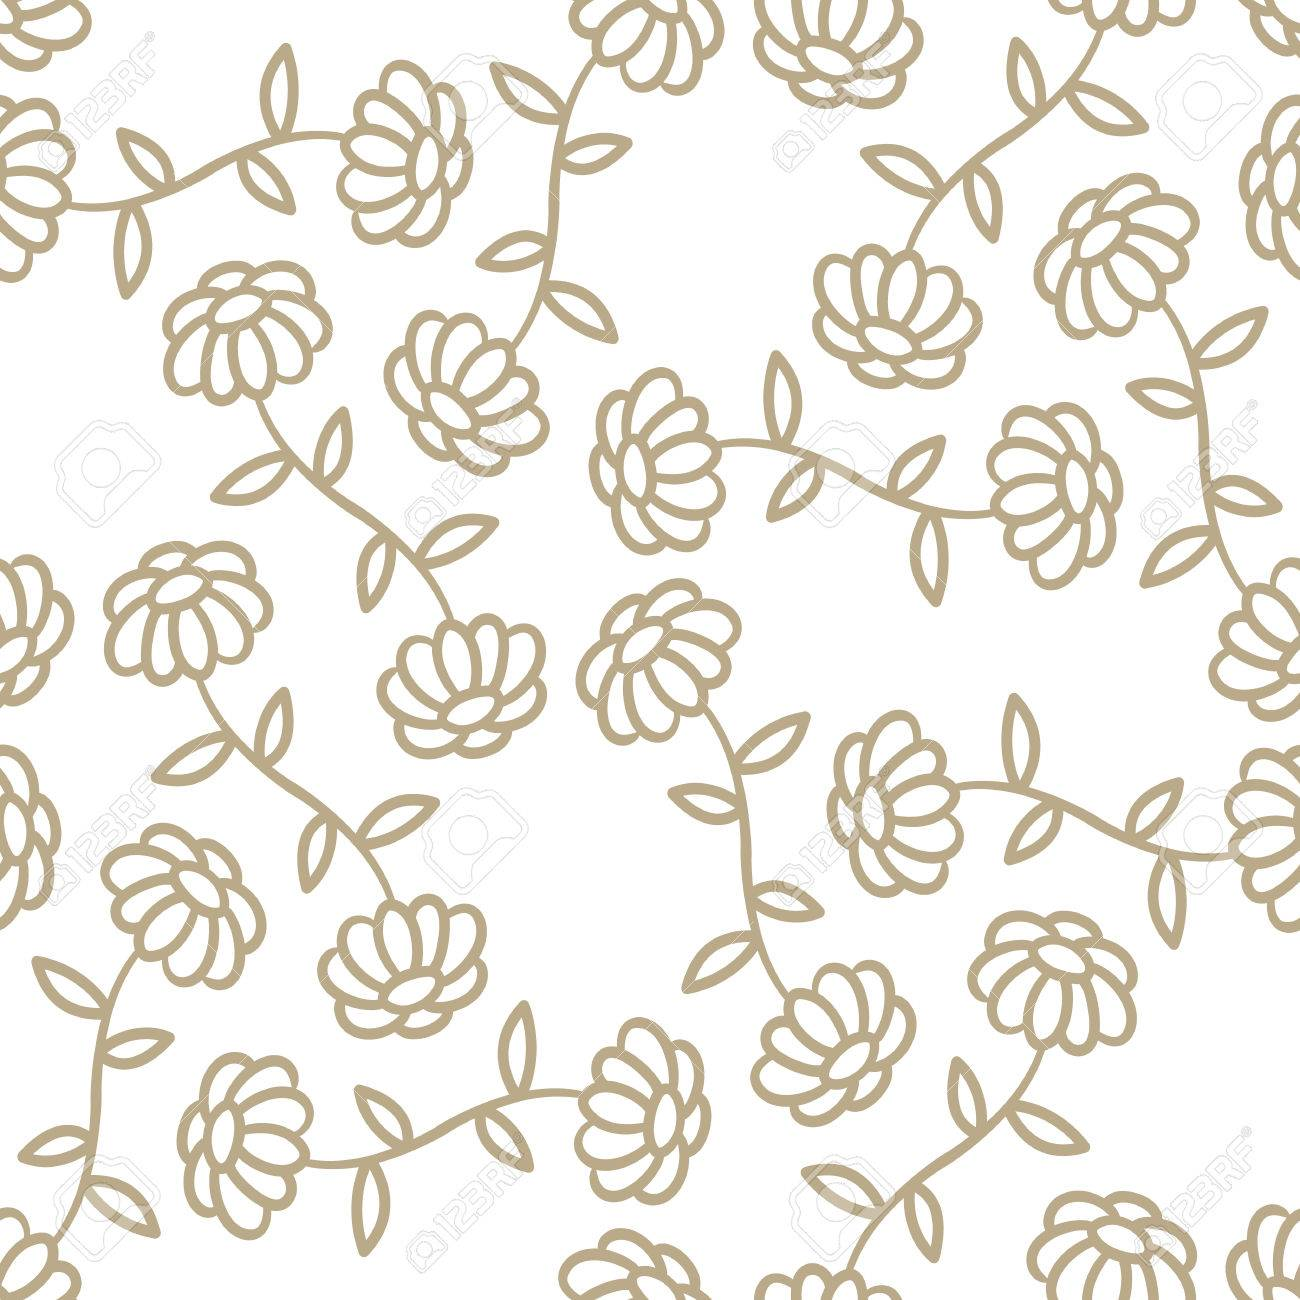 Seamless Simple Flower Vector Background Royalty Free Cliparts